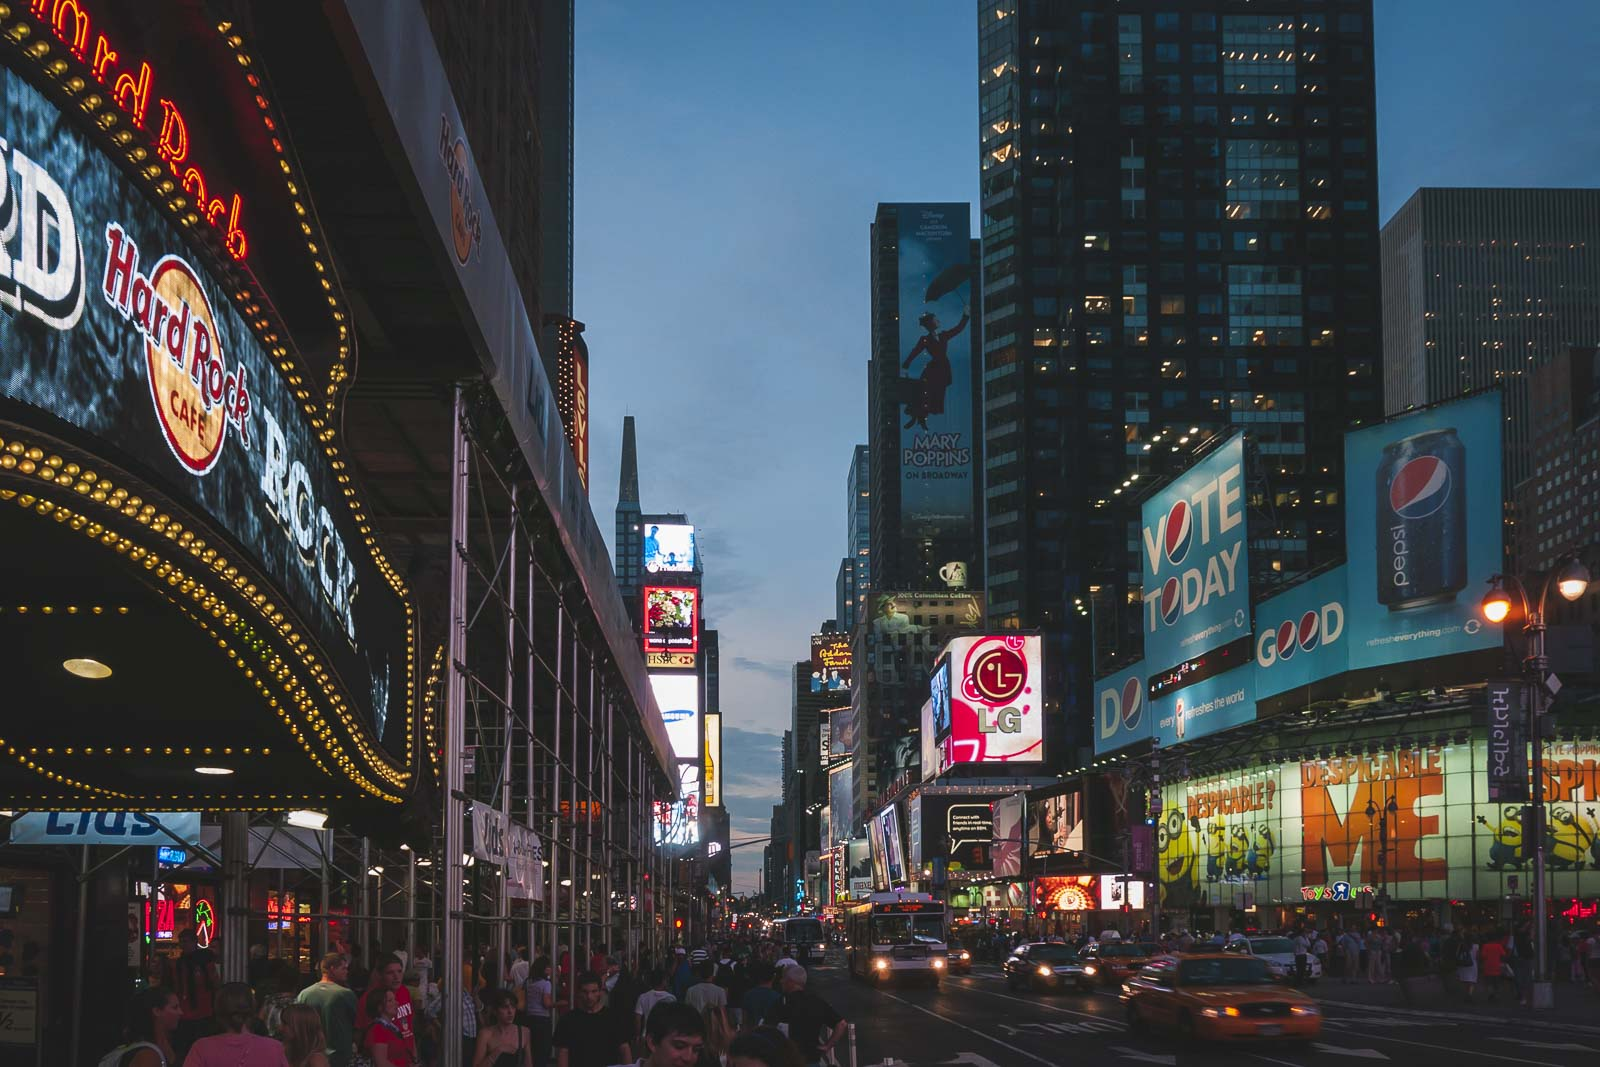 Midnight Moment in Times Square